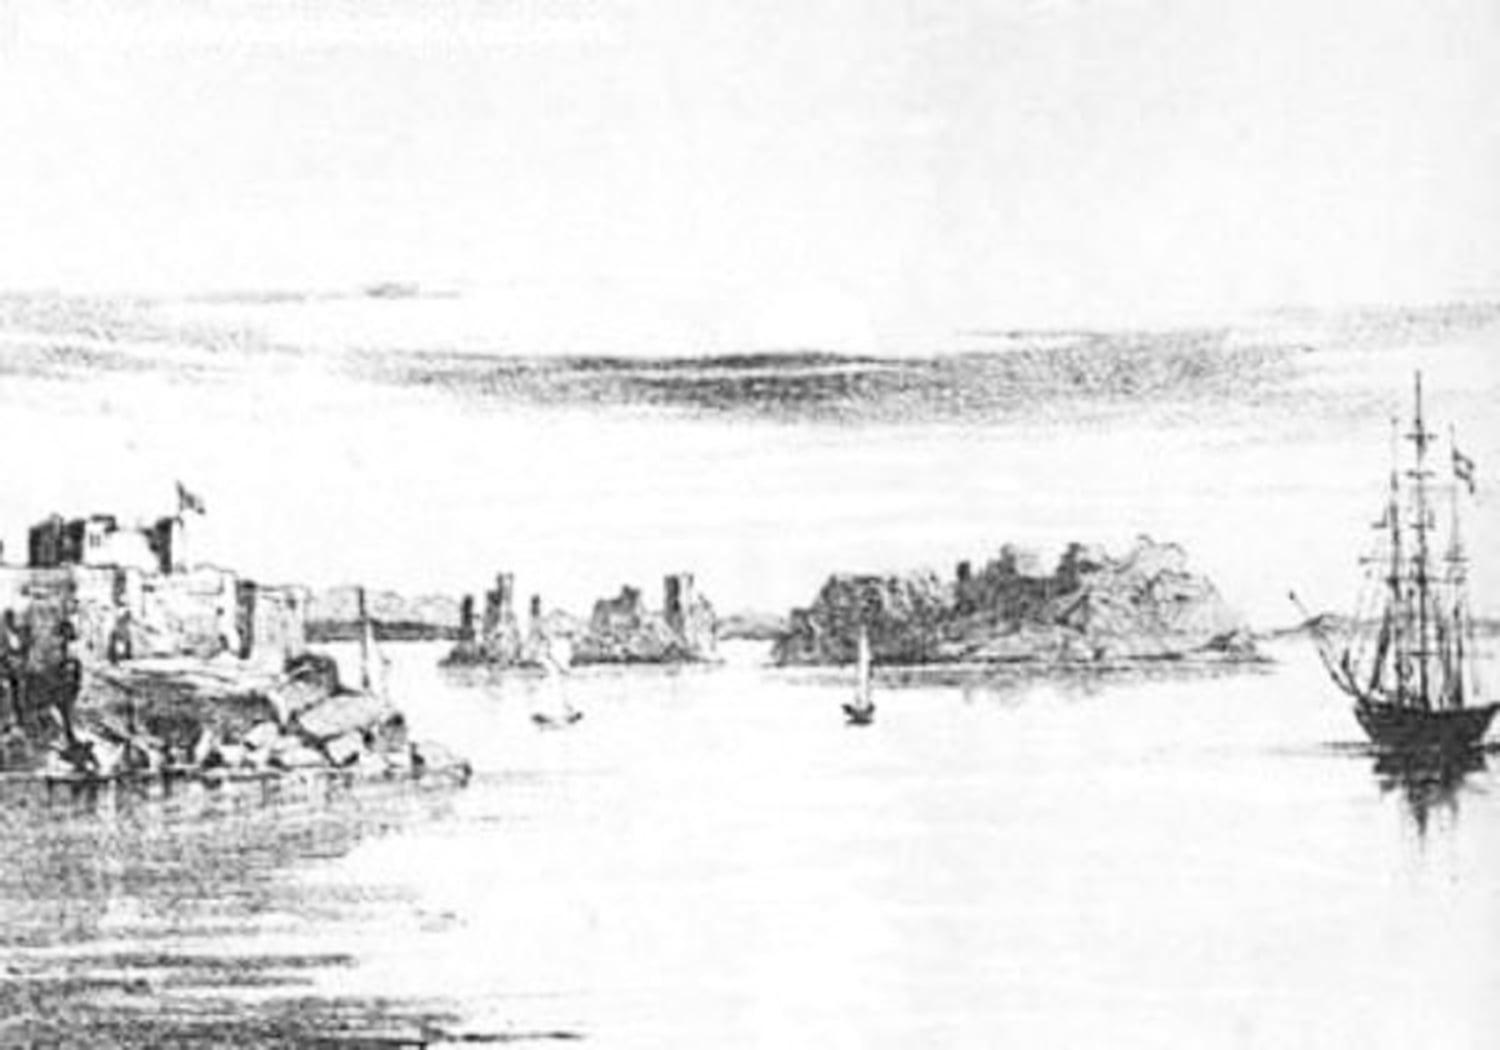 An 1839 sketch of Karachi drawn by a British traveller on the eve of Britain's conquest of the city. Source:  Gazetteer of the Province of Sind. B Volume 1 Karachi District 1919.